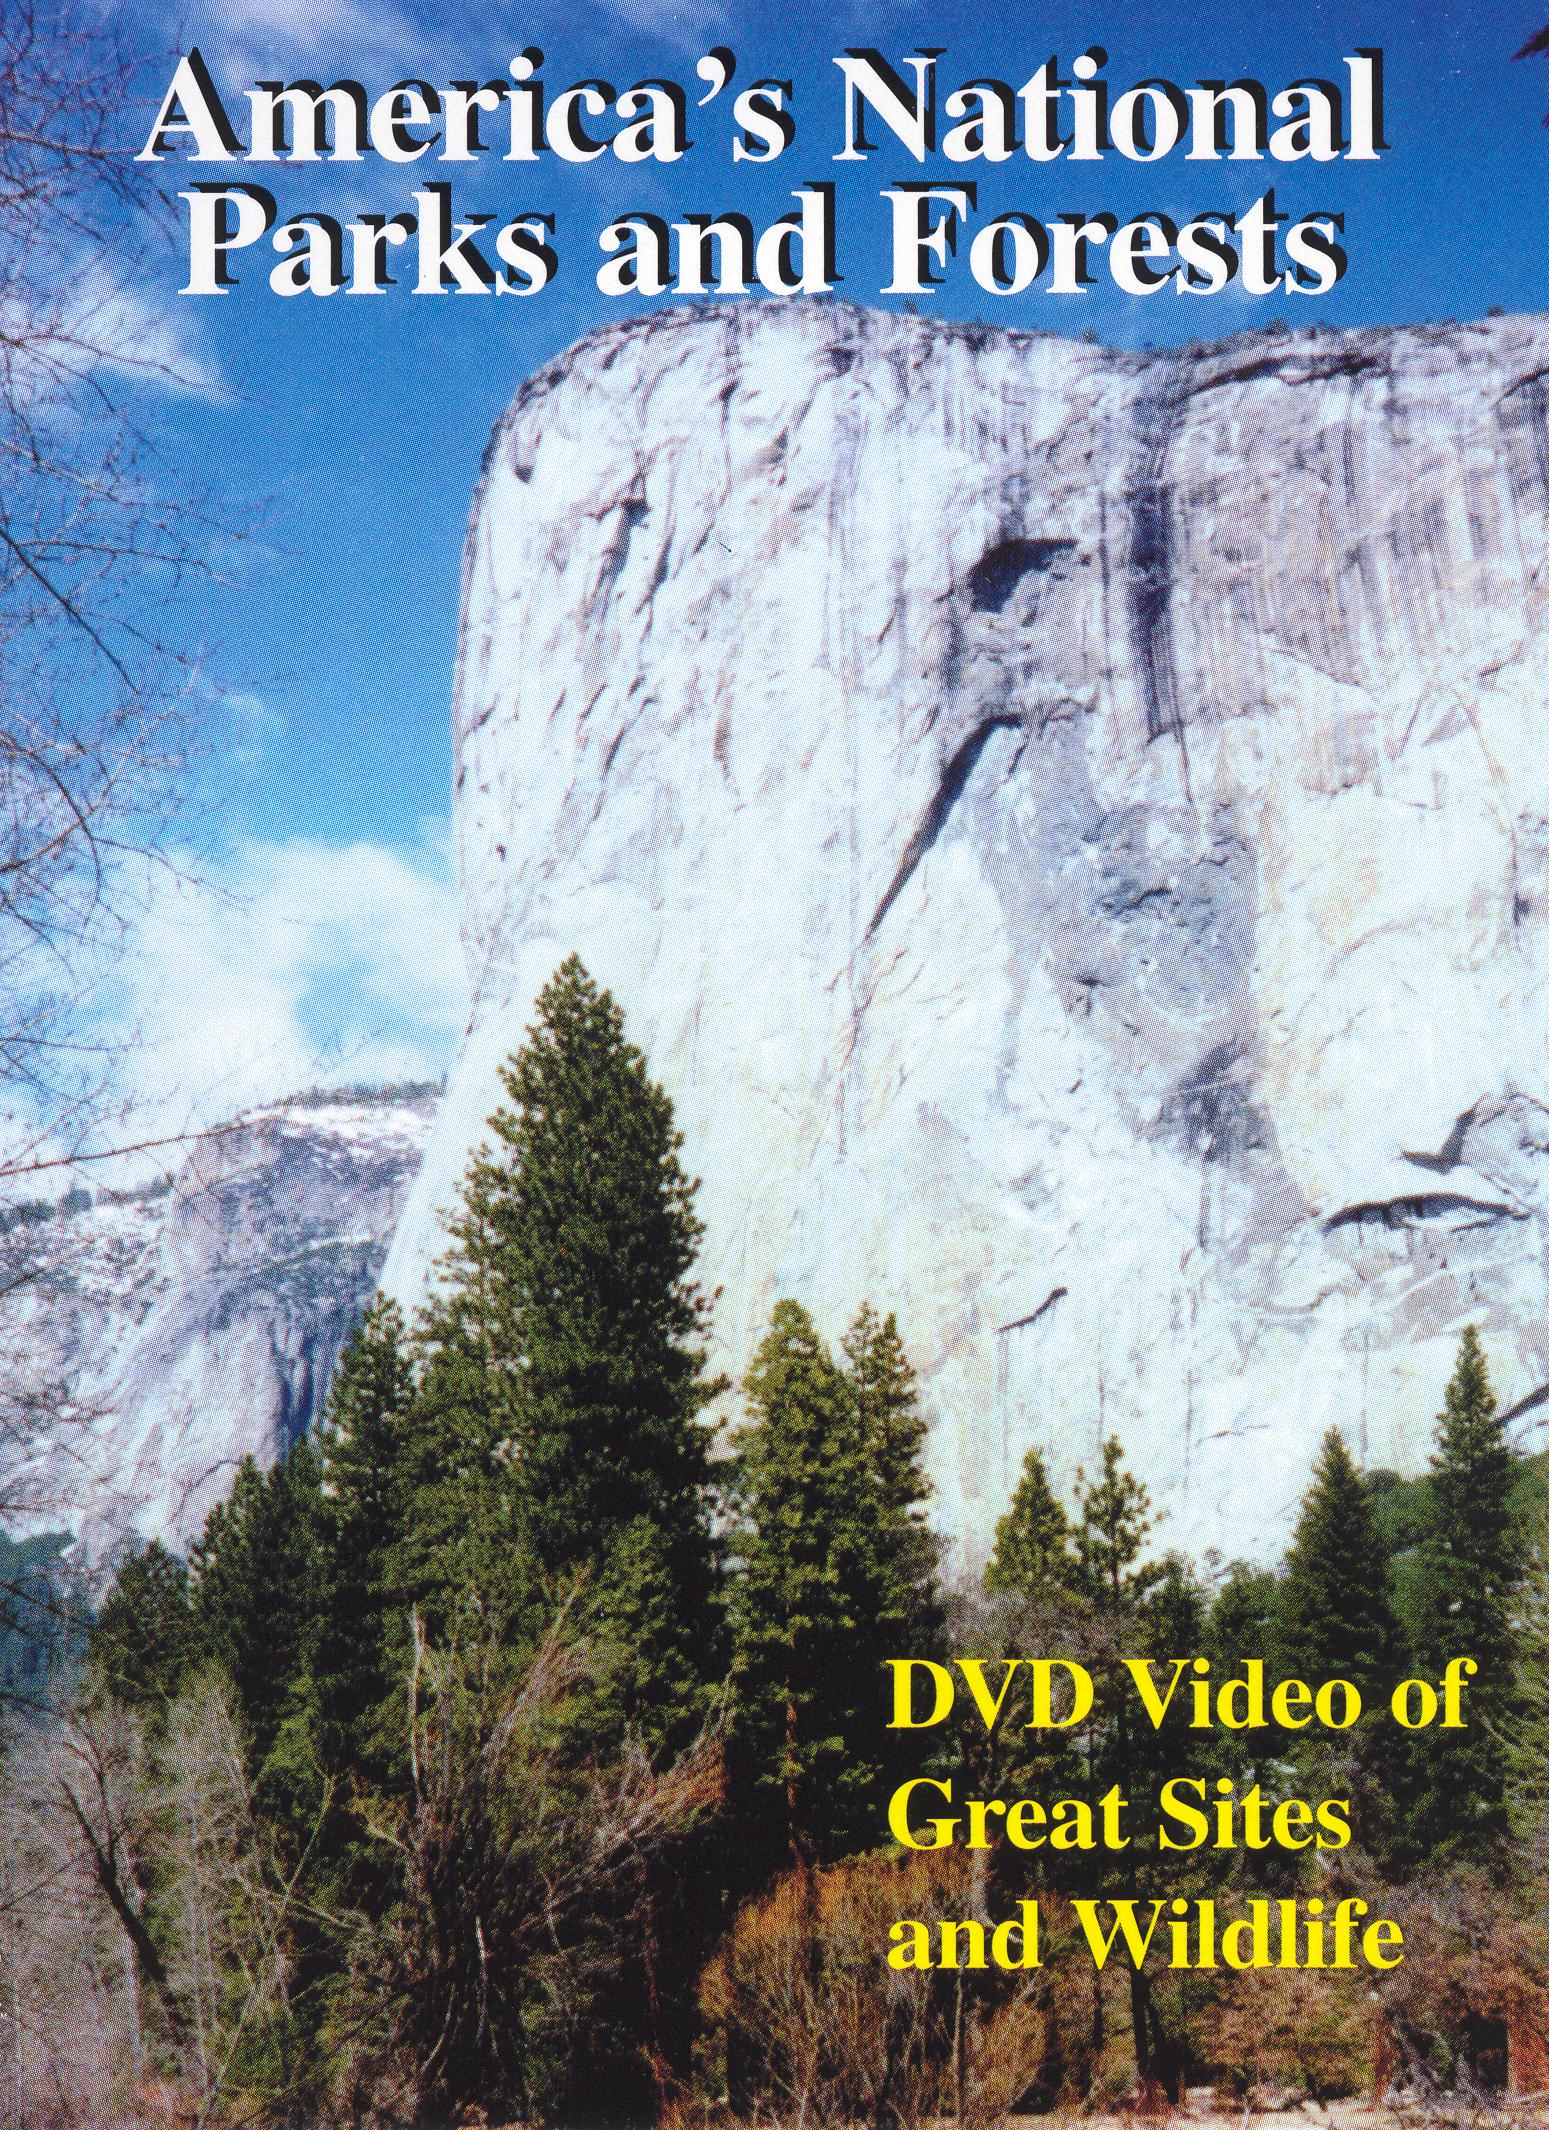 America's National Parks and Forests